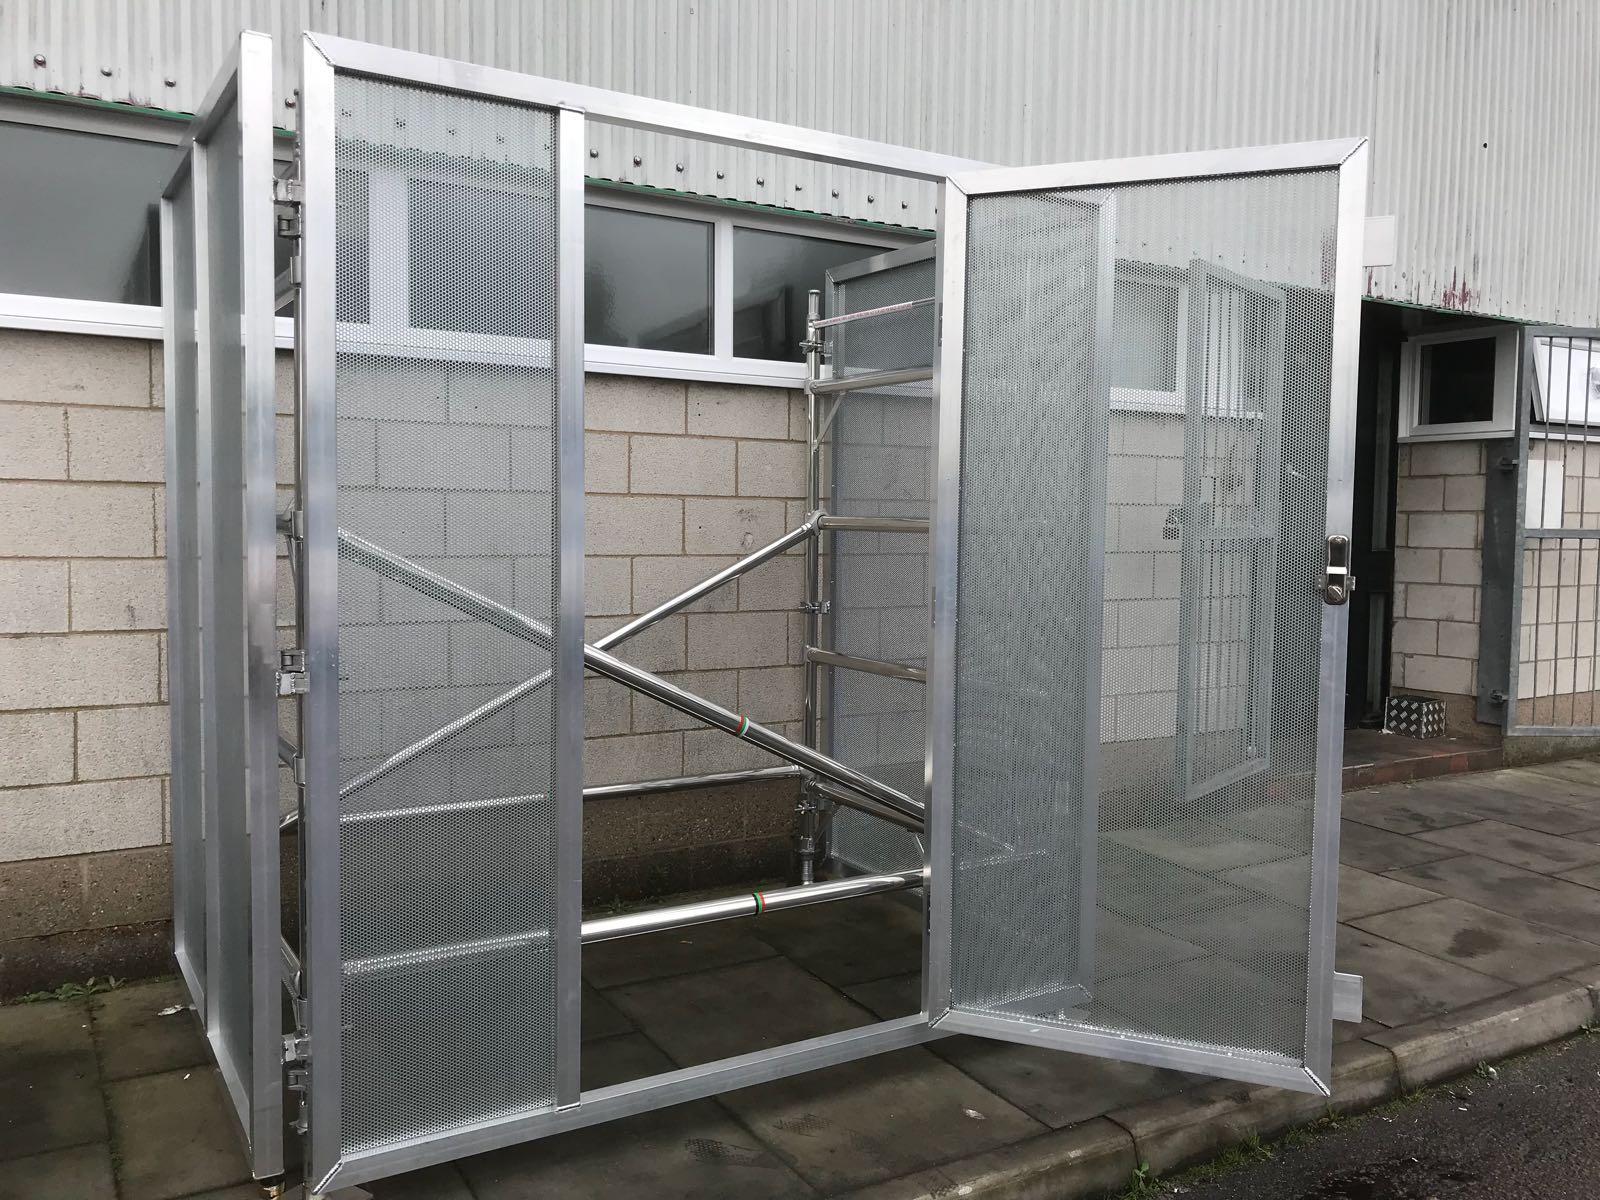 Securi-panel, Aluminium Scaffold Tower, Euro Towers, 3T tower, Working at heights, euro 500, agr tower